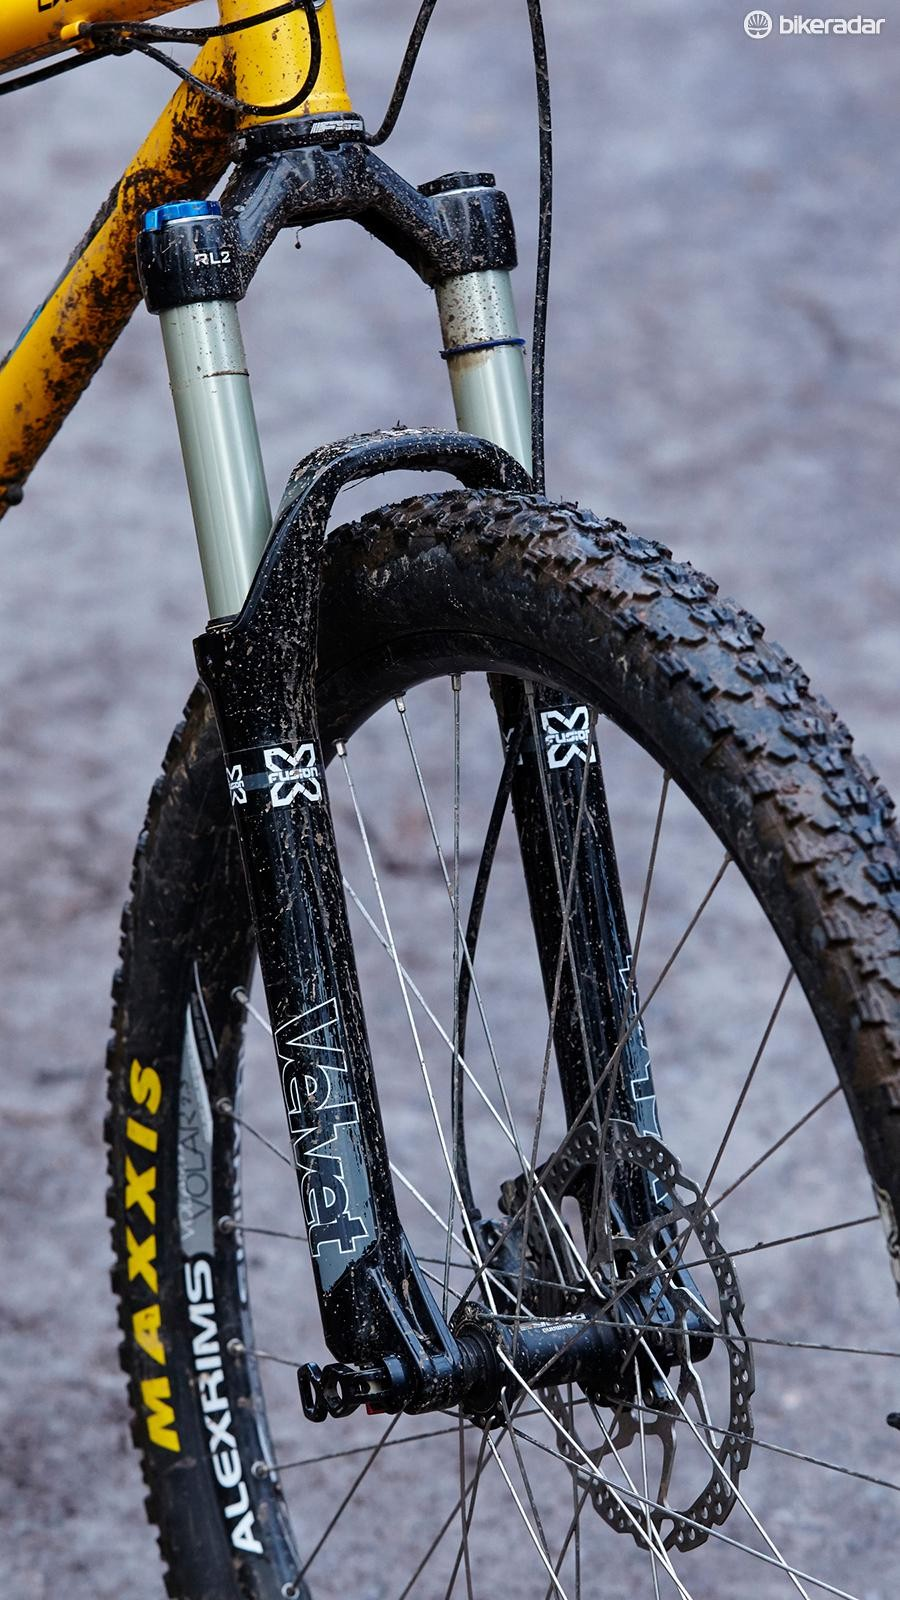 X-Fusion's Velvet fork is a decent performer, but can't match the test benchmark set by RockShox's Revelation